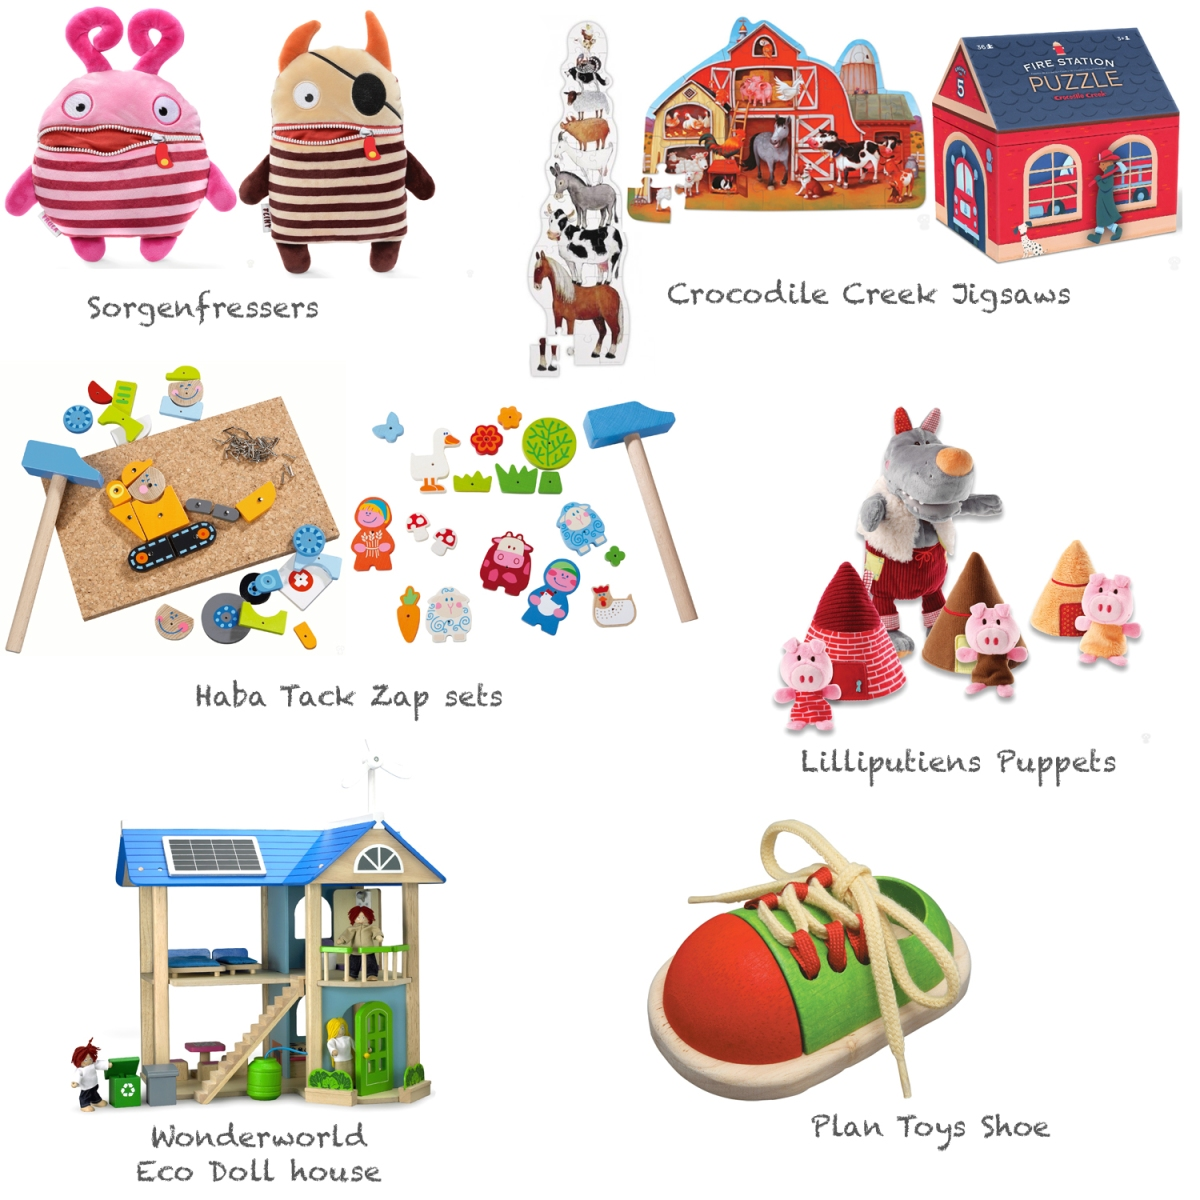 Top Gifts for over 3 year olds and their educational value ...